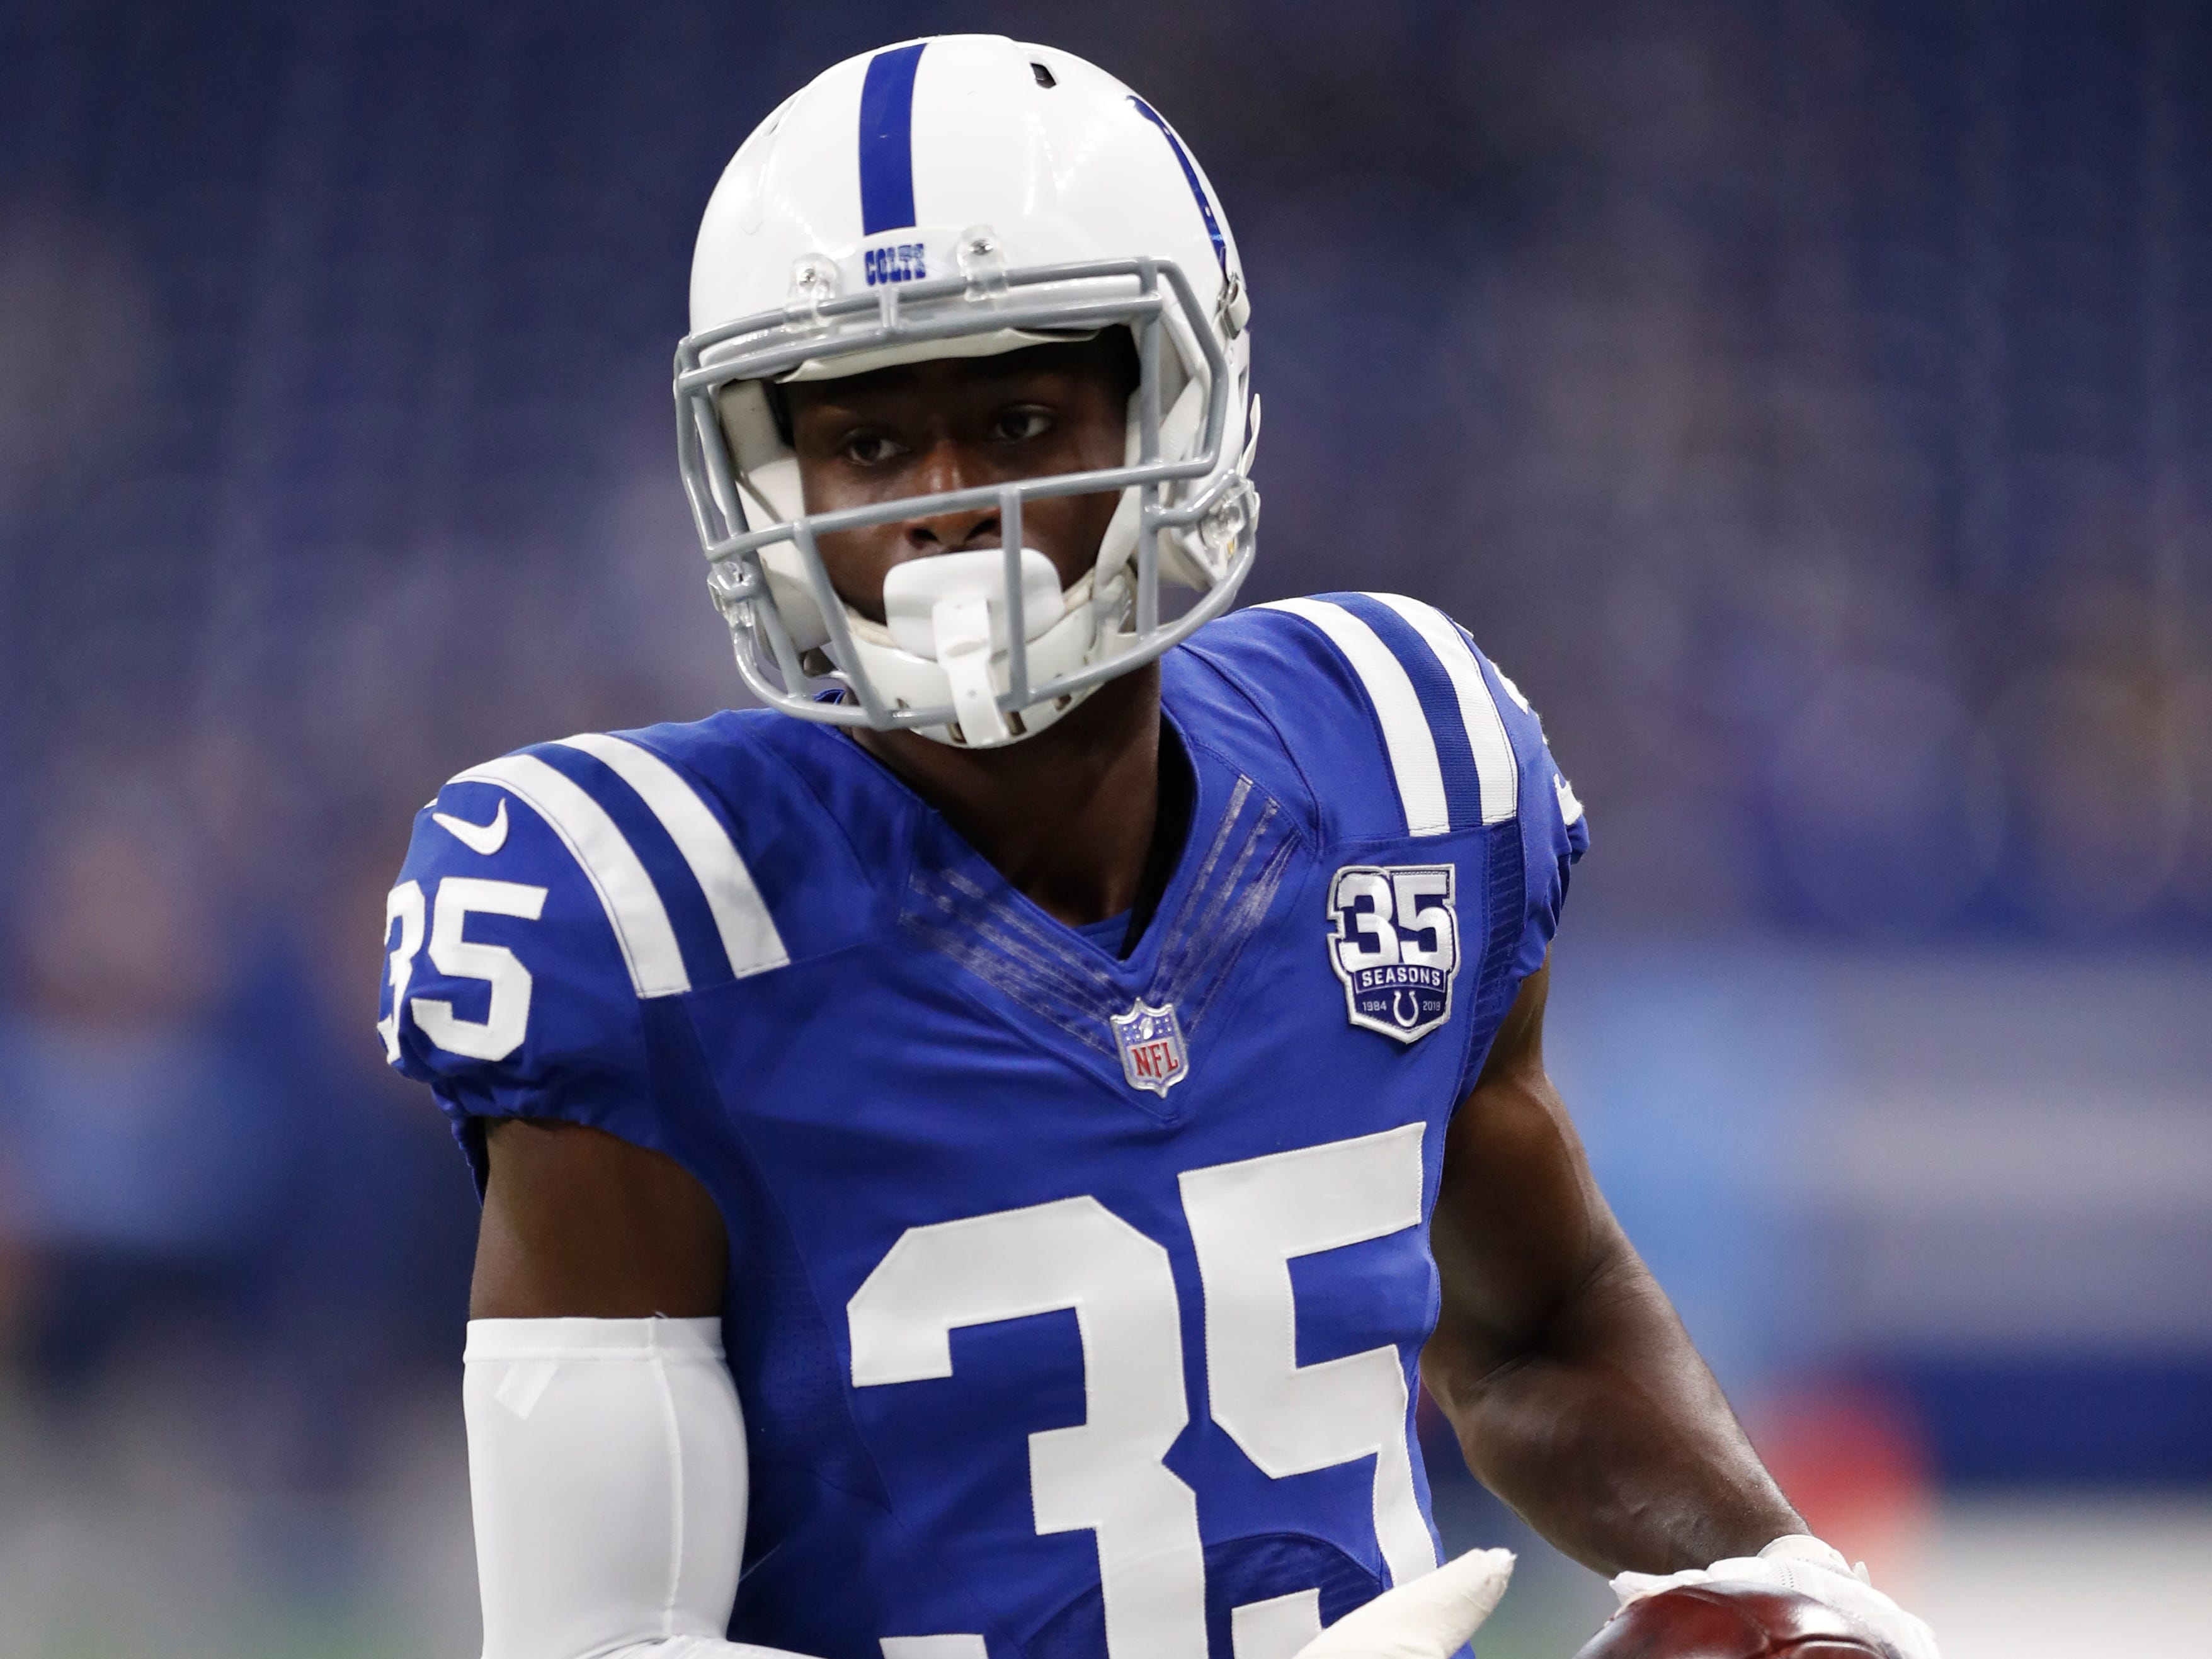 Pierre Desir, CB, Indianapolis: A small-school standout, Desir was taken in the fourth round in 2014. Indianapolis is his fourth professional stop, and the first that trusted him as a starter. The ball skill numbers are modest, with eight pass defenses and one interception in 2018, but he limited opposing quarterbacks to a 57.8 percent completion percentage on throws his direction, while providing top-tier run support.  Oh, and he committed just two penalties.